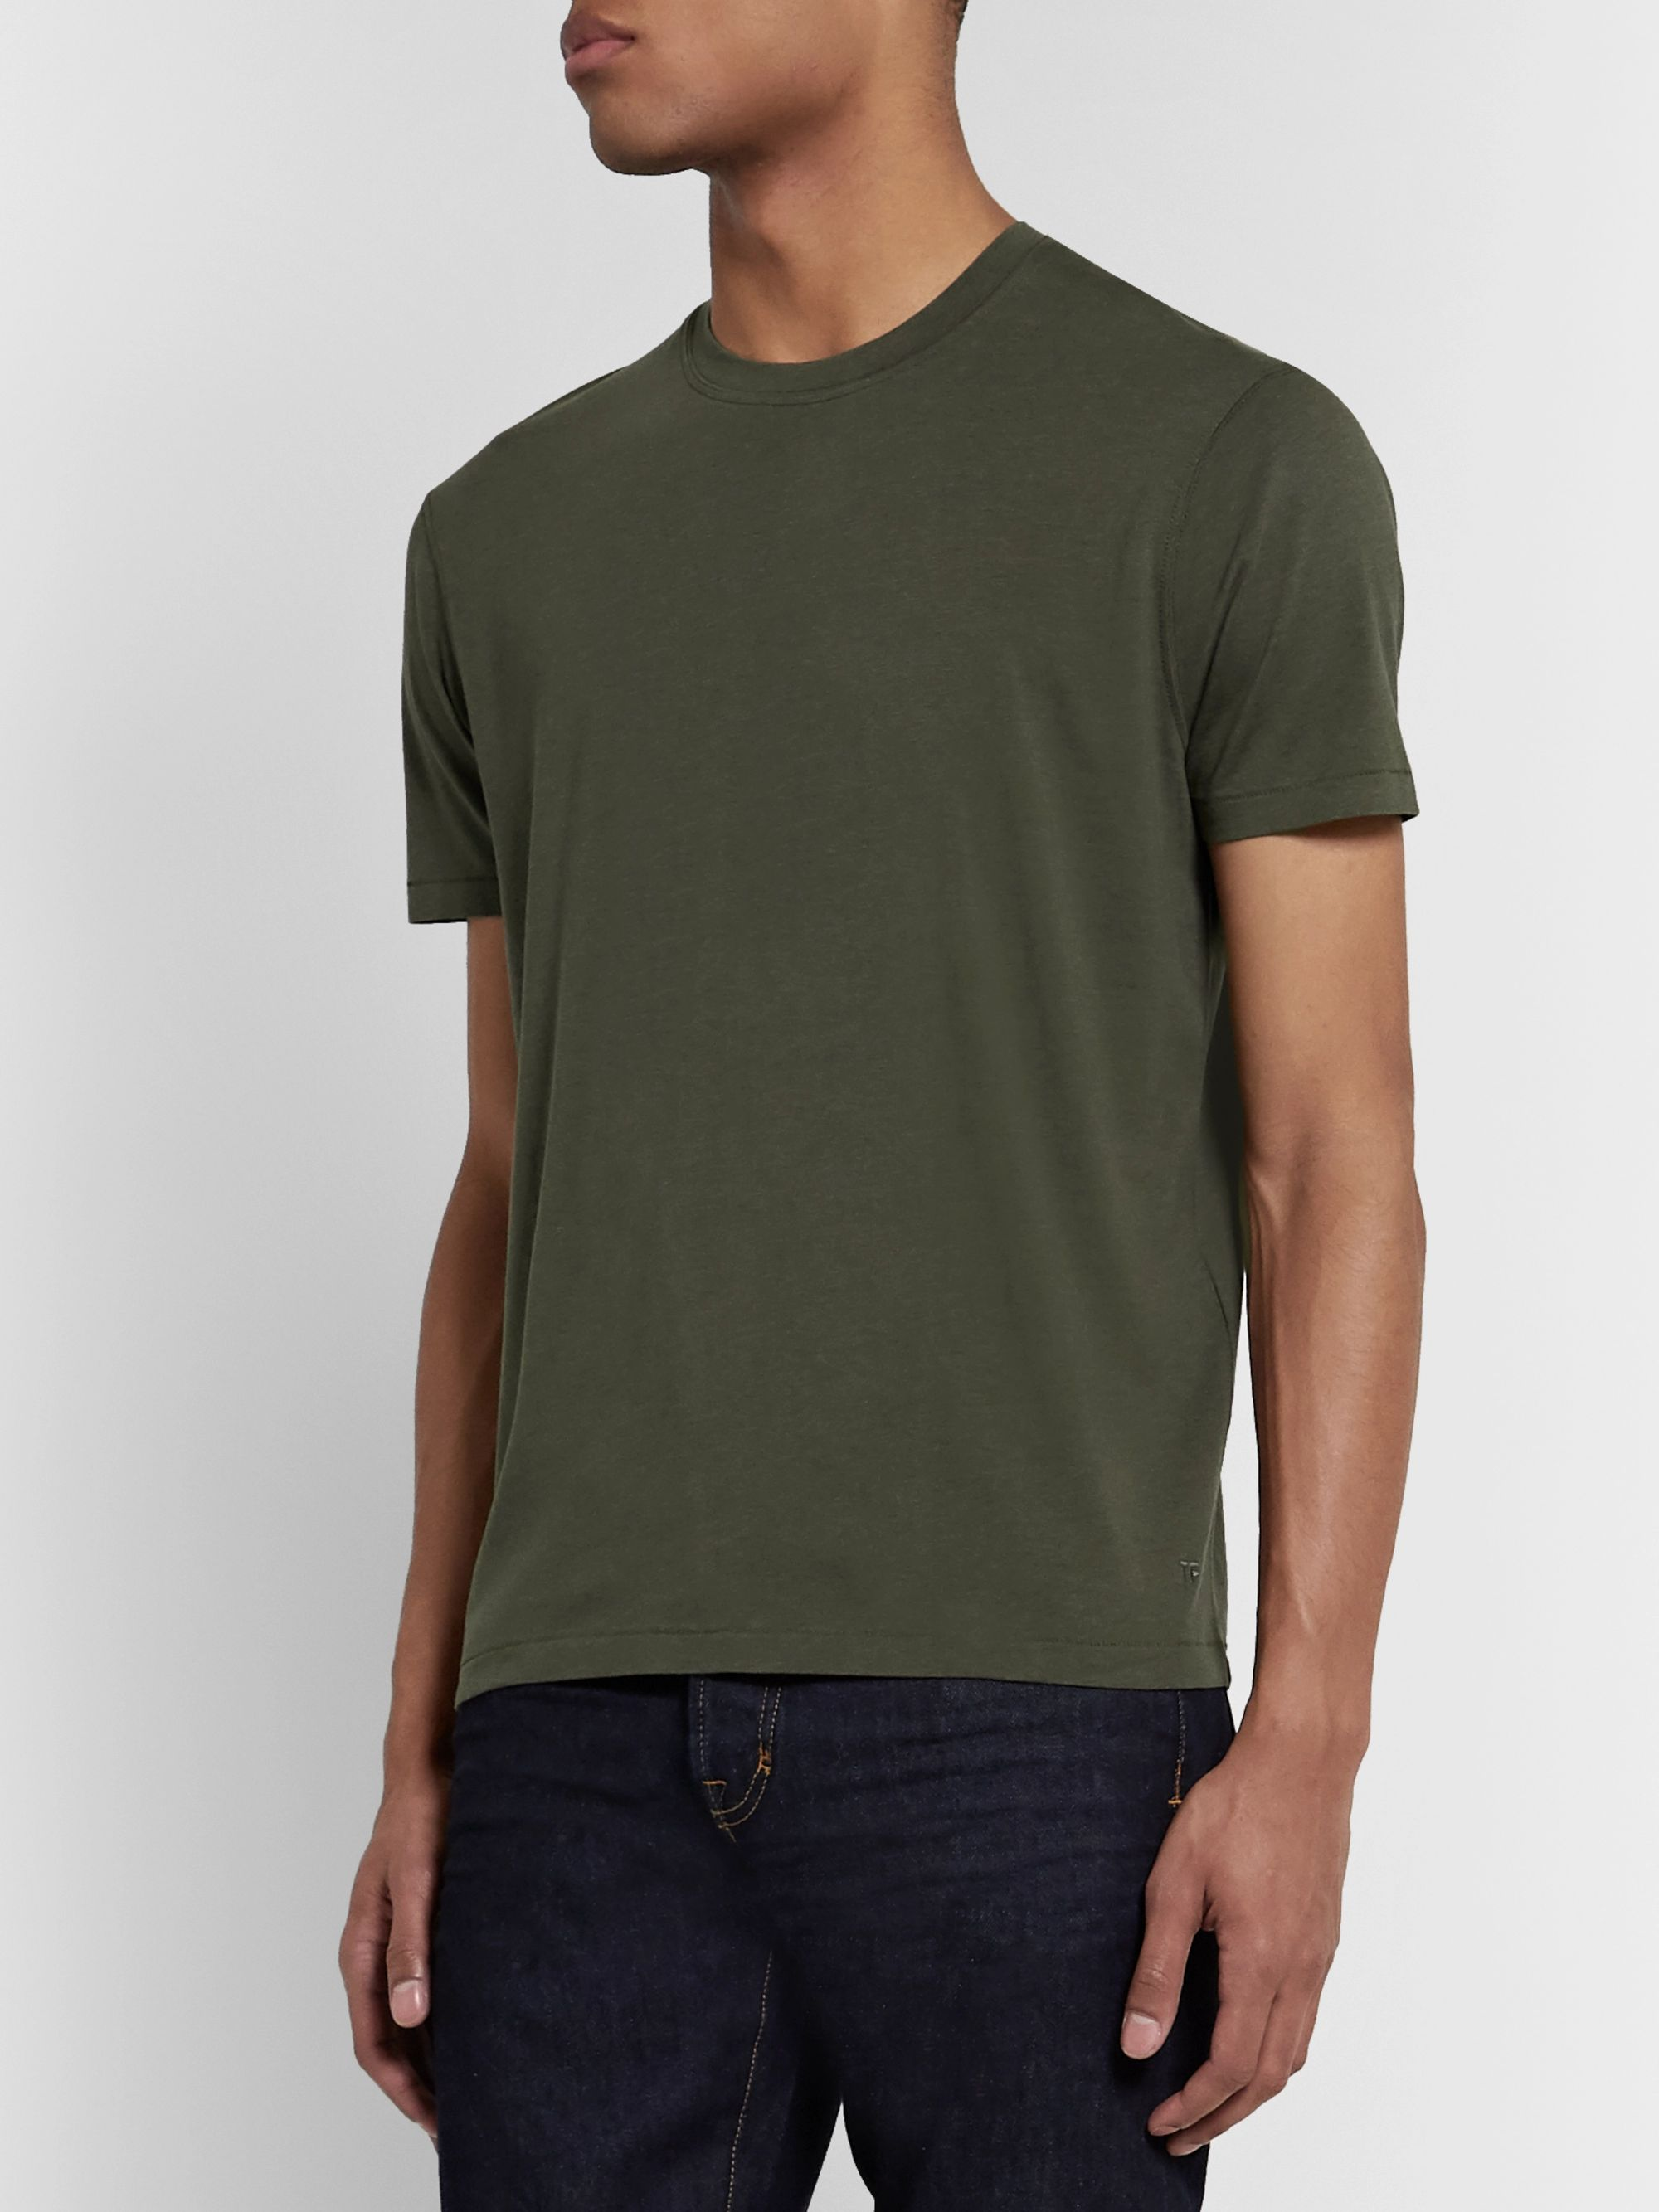 TOM FORD Slim-Fit Lyocell and Cotton-Blend Jersey T-Shirt